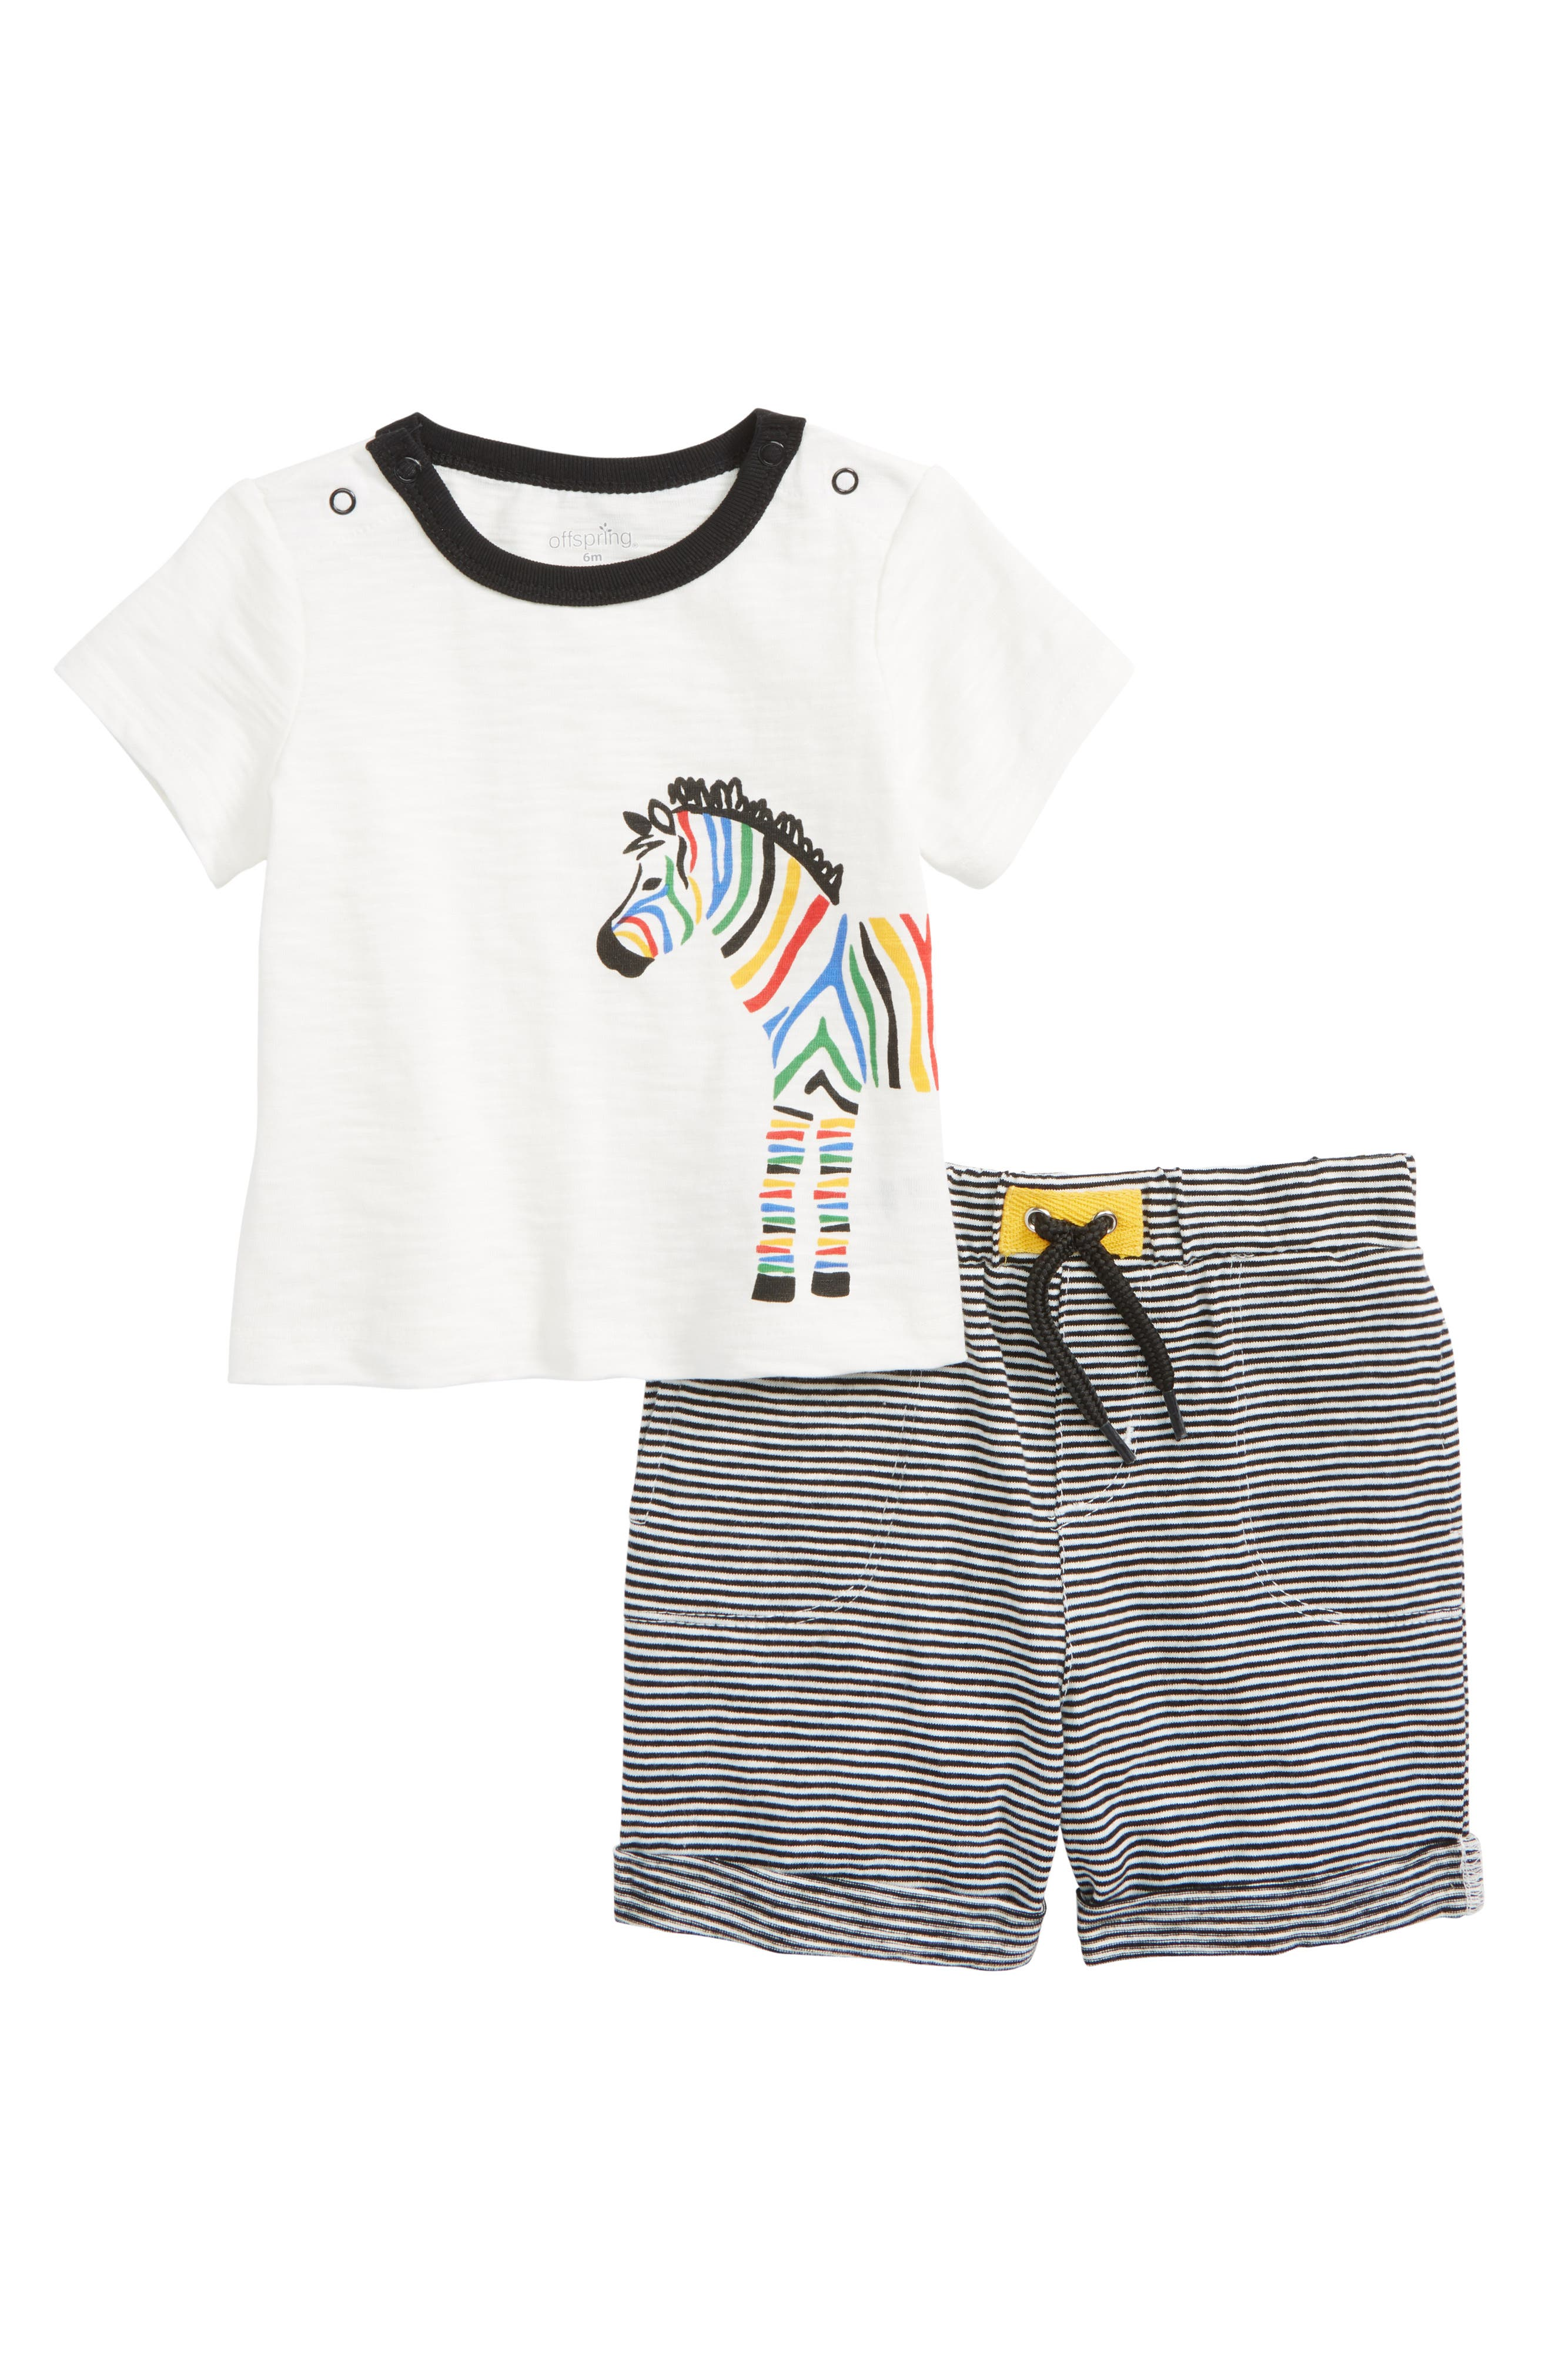 Zebra Stripe T-Shirt & Shorts Set,                             Main thumbnail 1, color,                             135